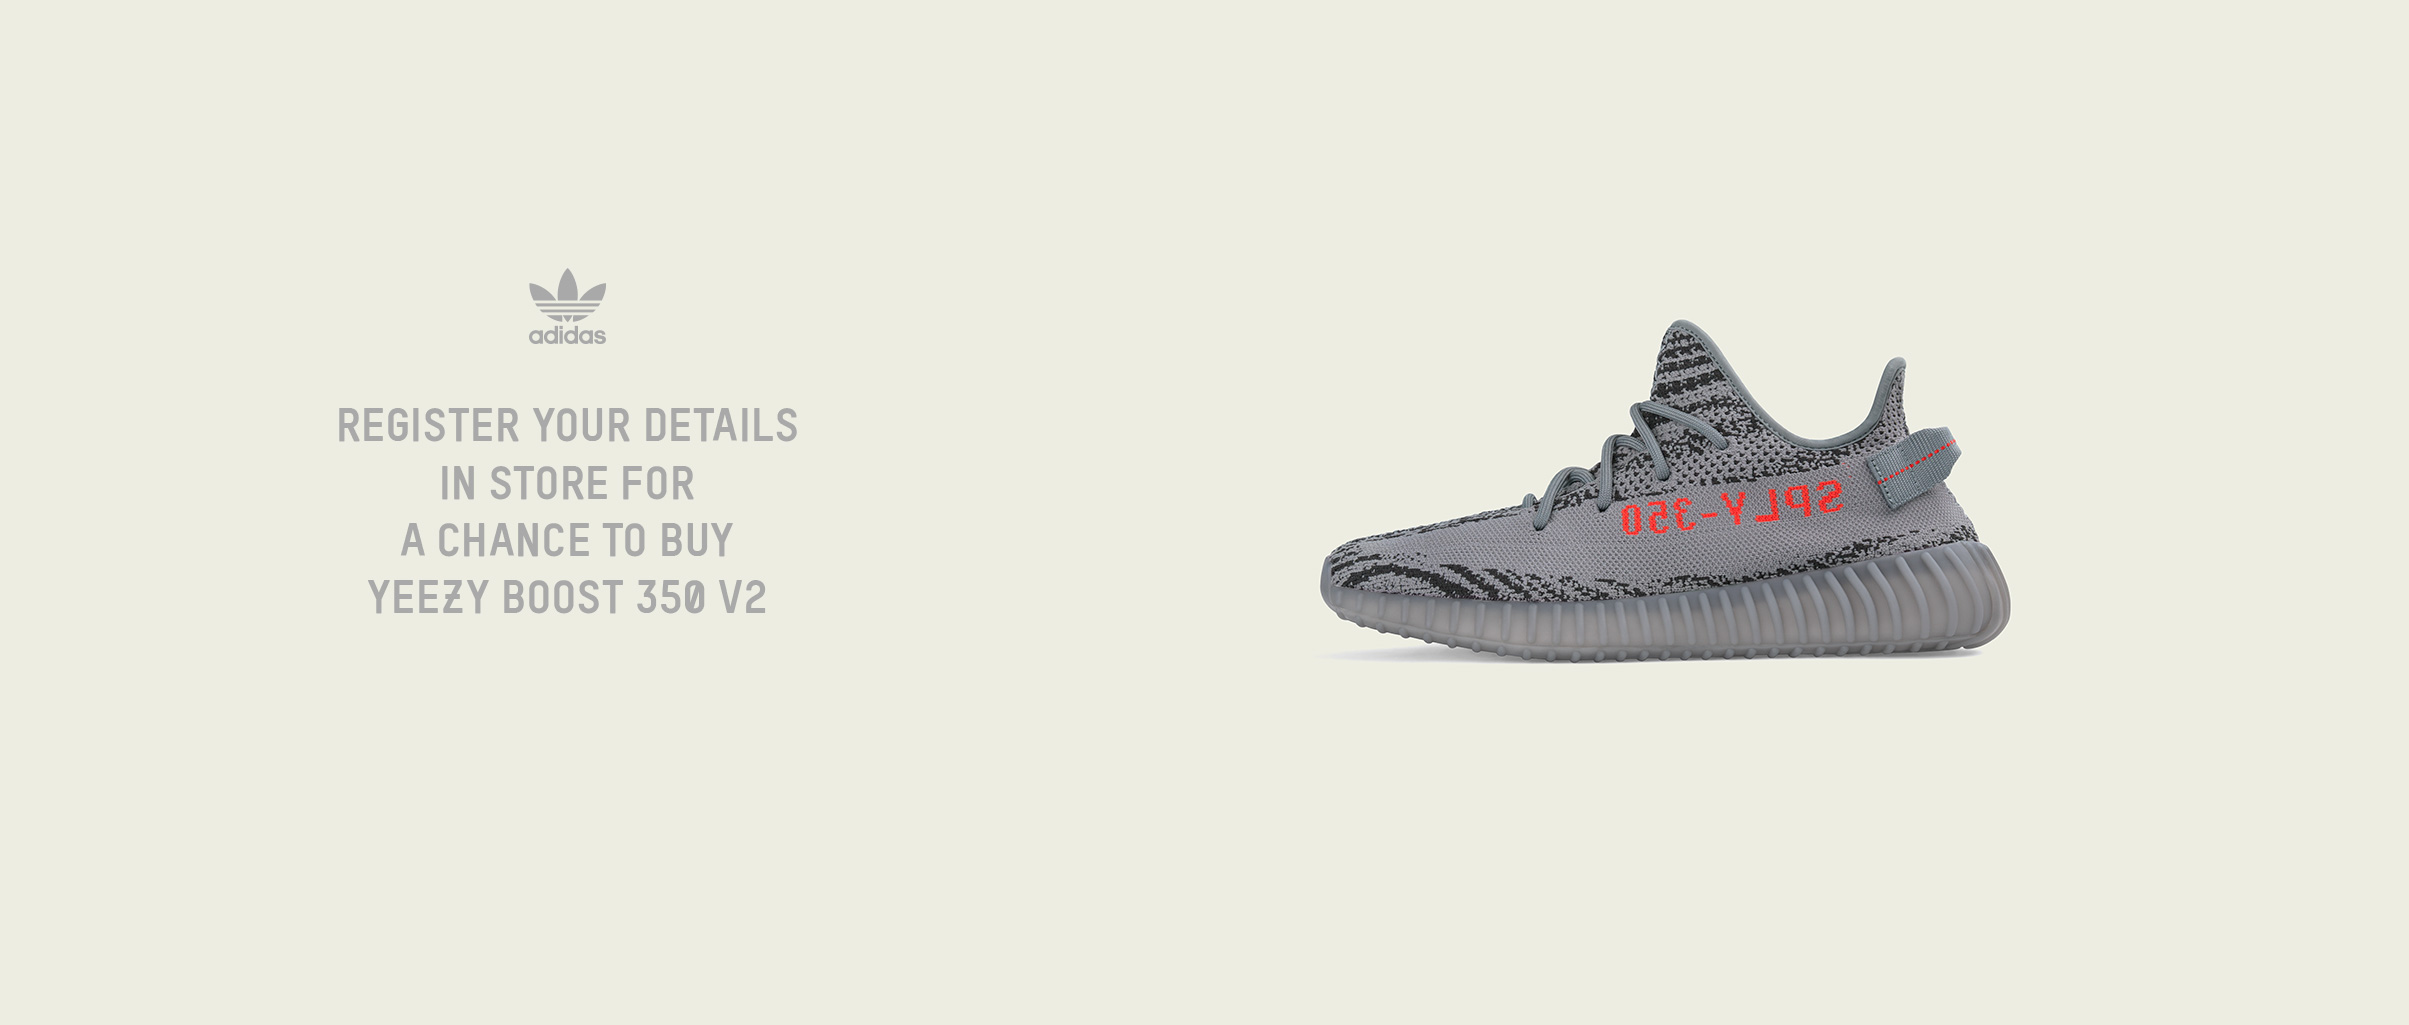 c0787dd3 YEEZY BOOST V2 350 BELUGA 2.0 - OUT NOVEMBER 25TH. Thursday, 16 November,  2017. ONLINE SALE AND IN-STORE RAFFLE